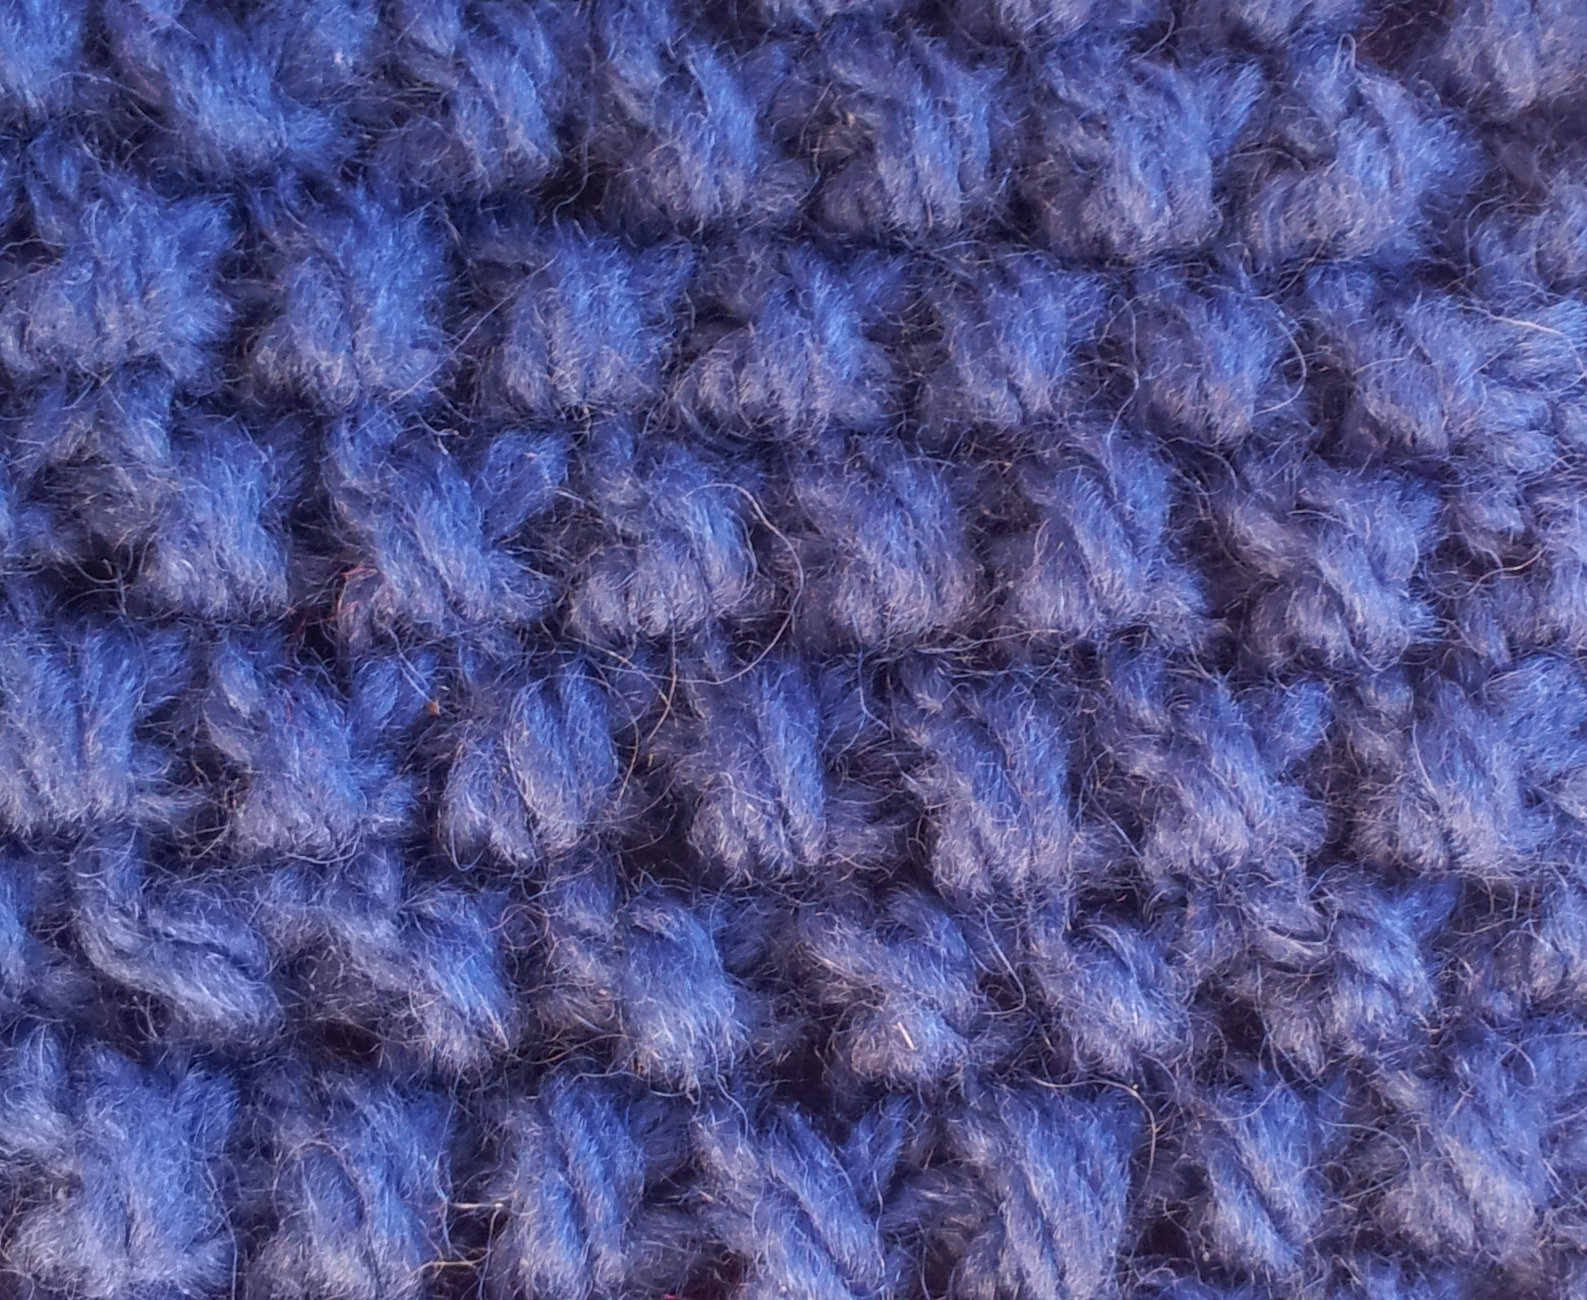 Knitting Stitches Same On Both Sides : Basic Knitted Fabrics thestitchsharer